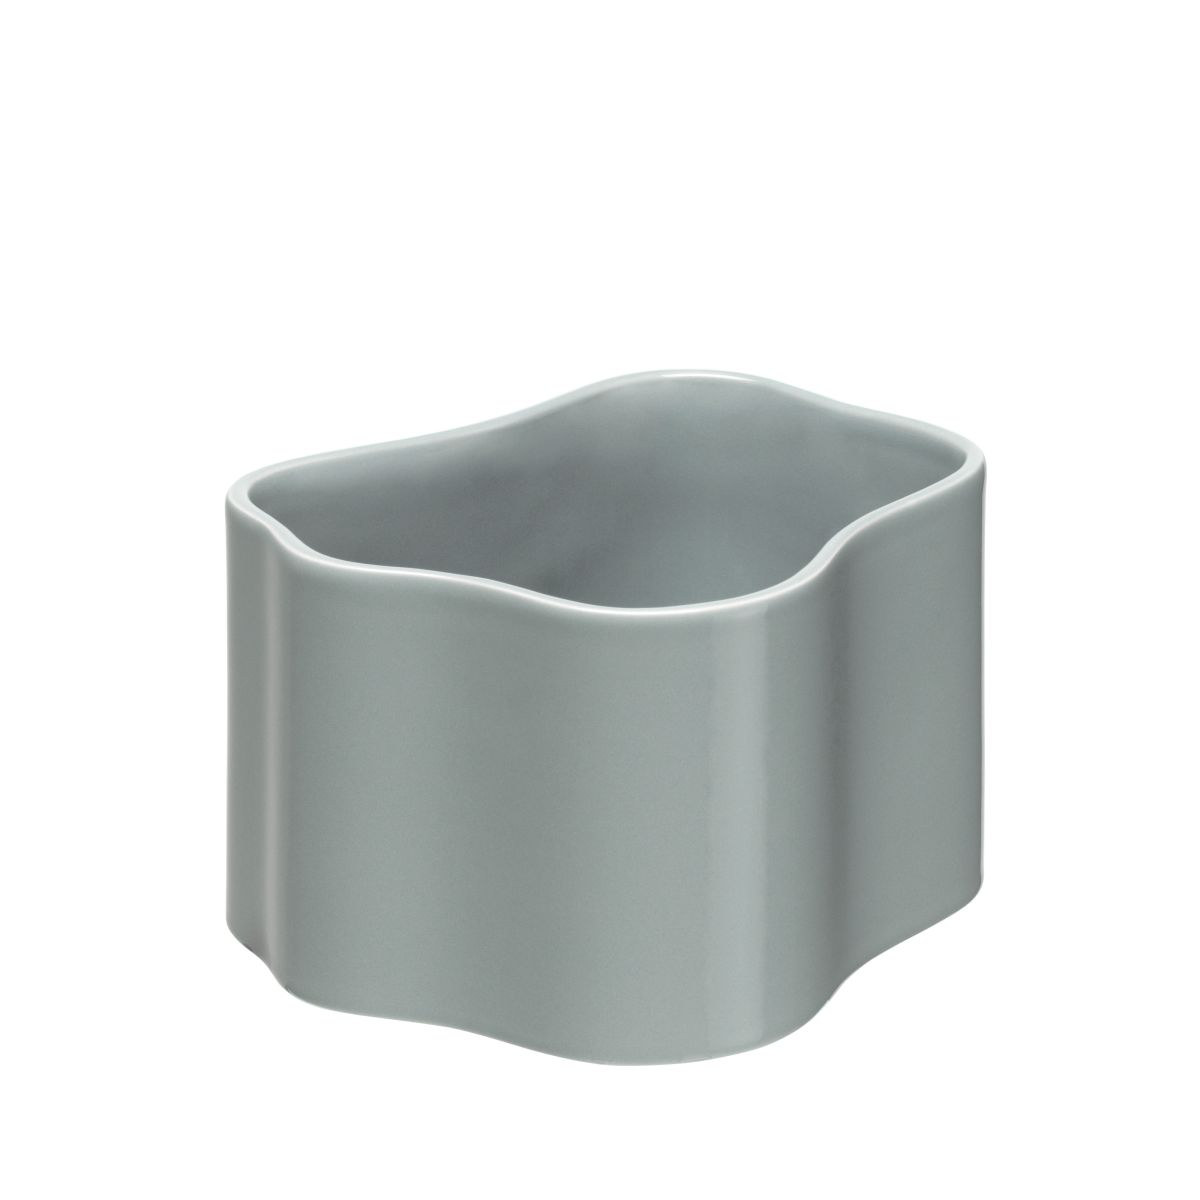 Plant pot shape B, size S, Light grey gloss_F